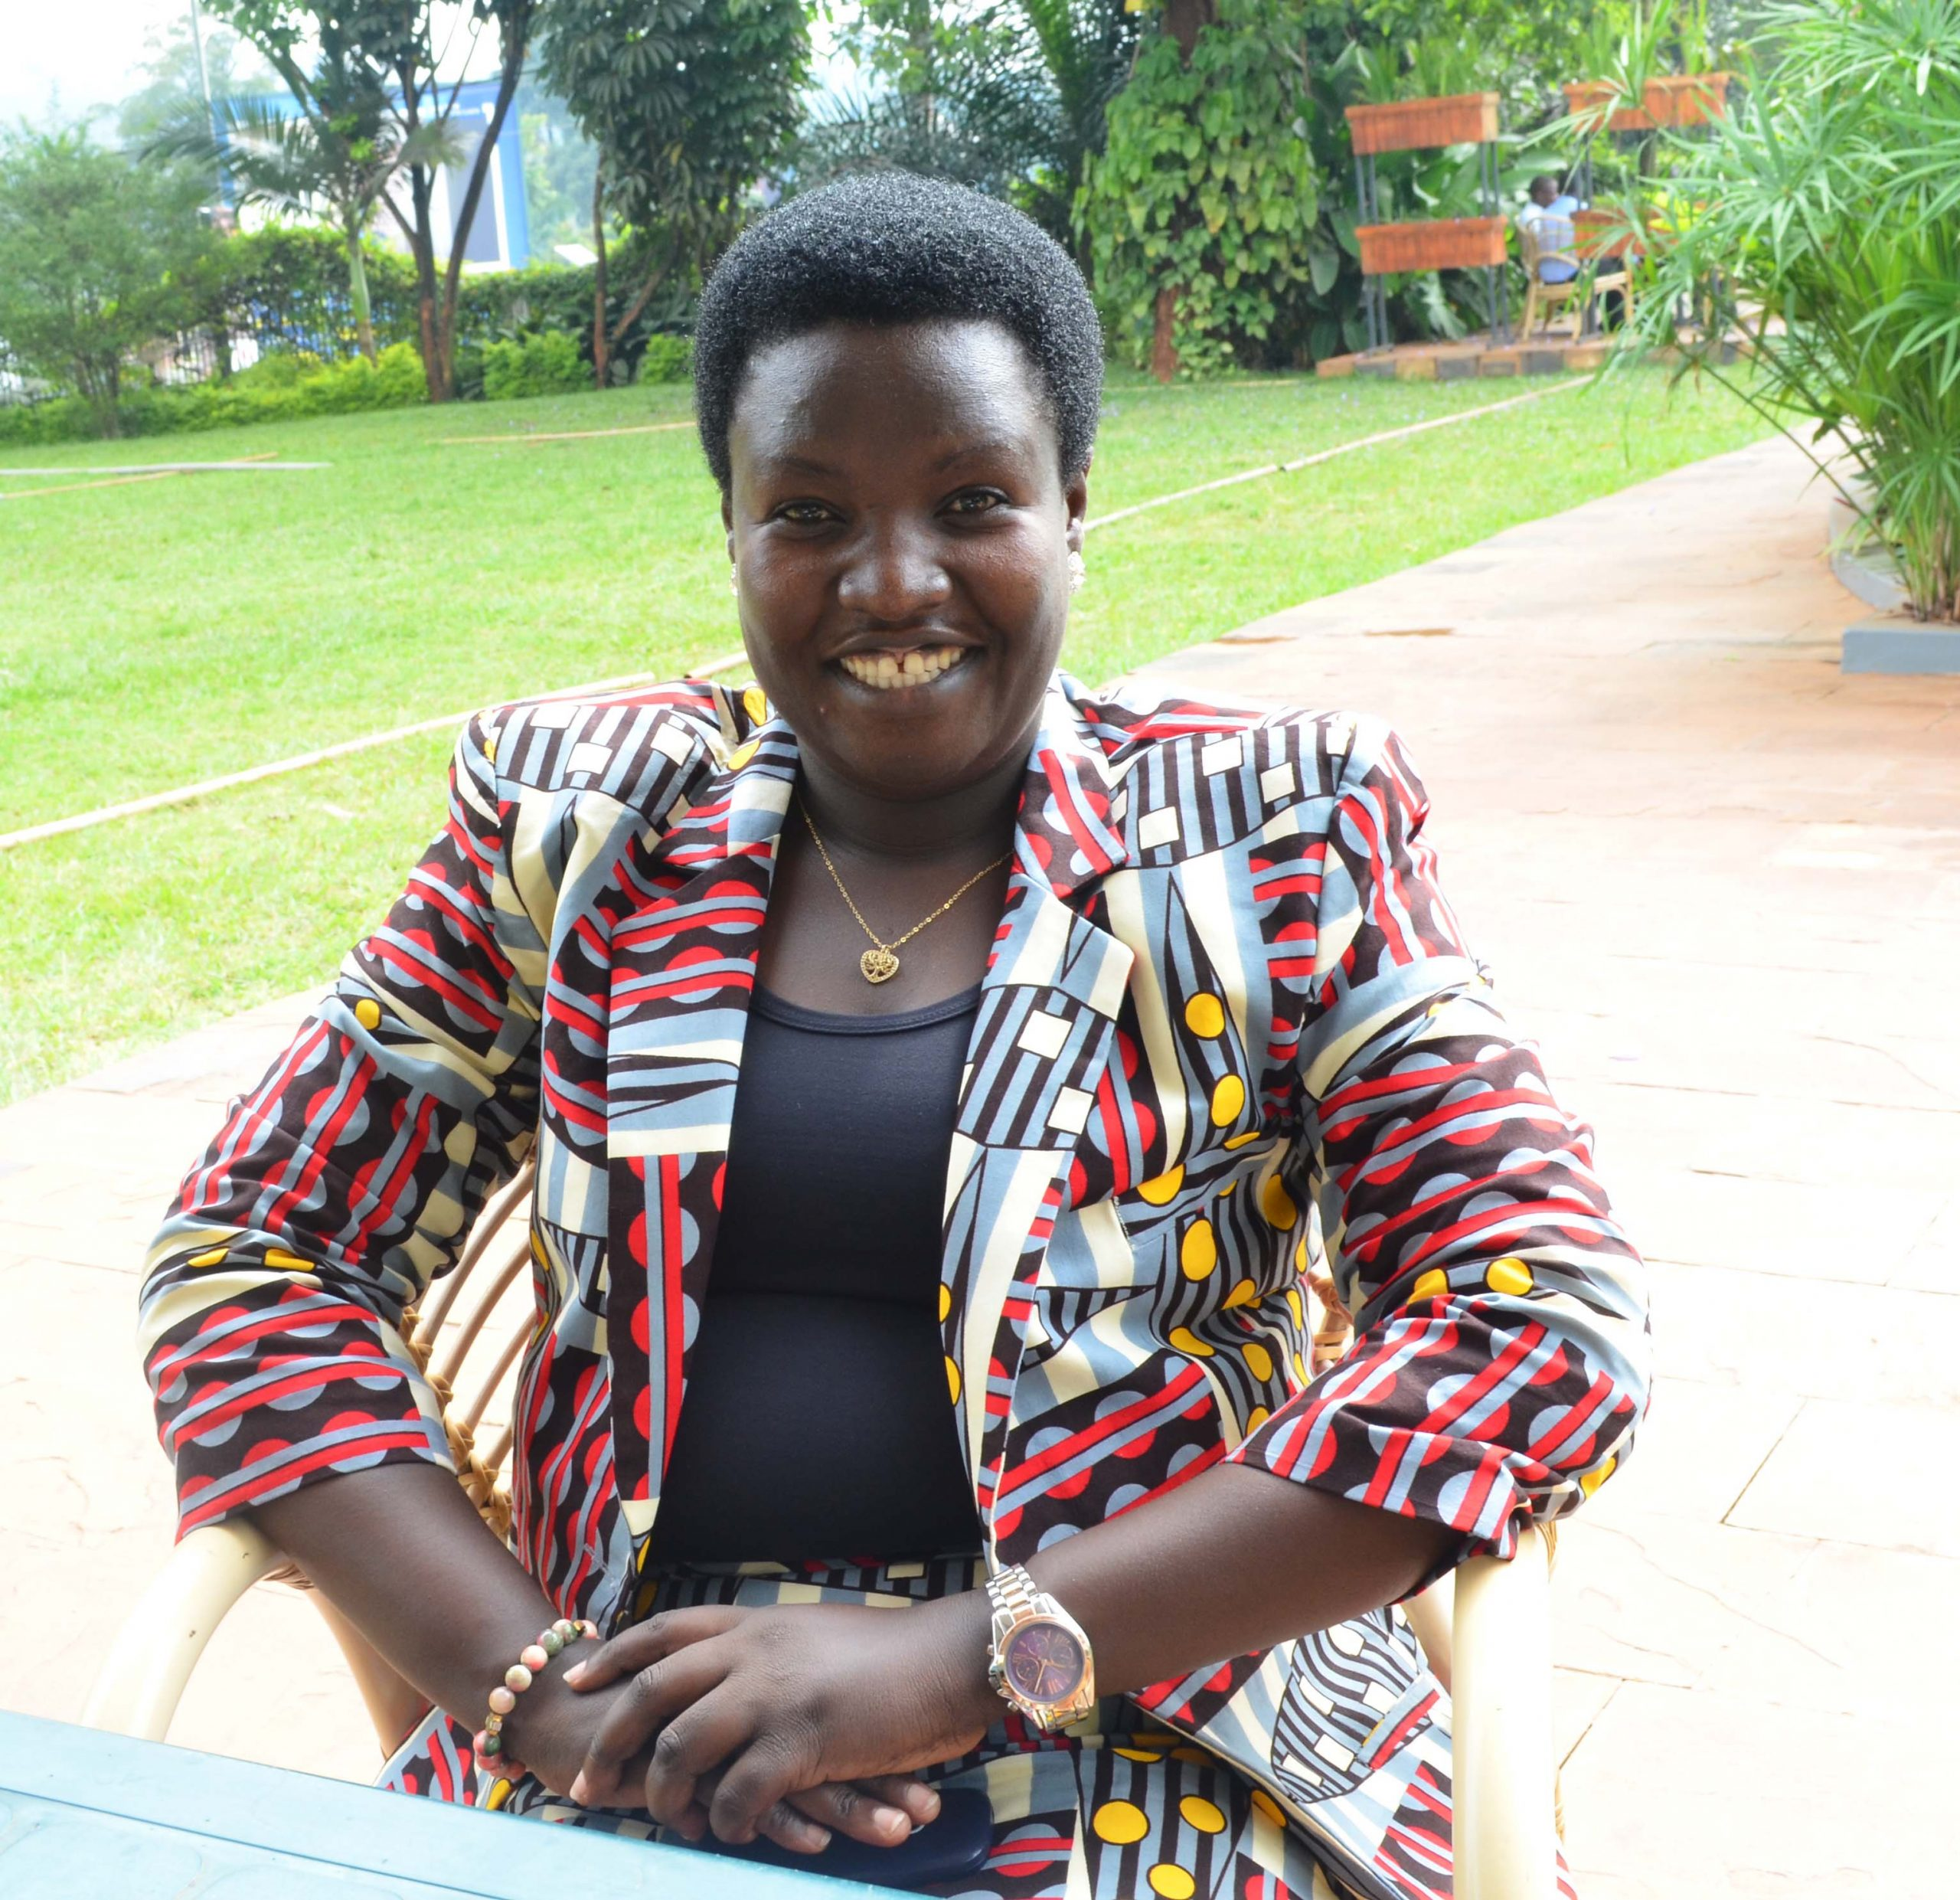 Why FGM has persisted despite a stringent law in place - Uganda